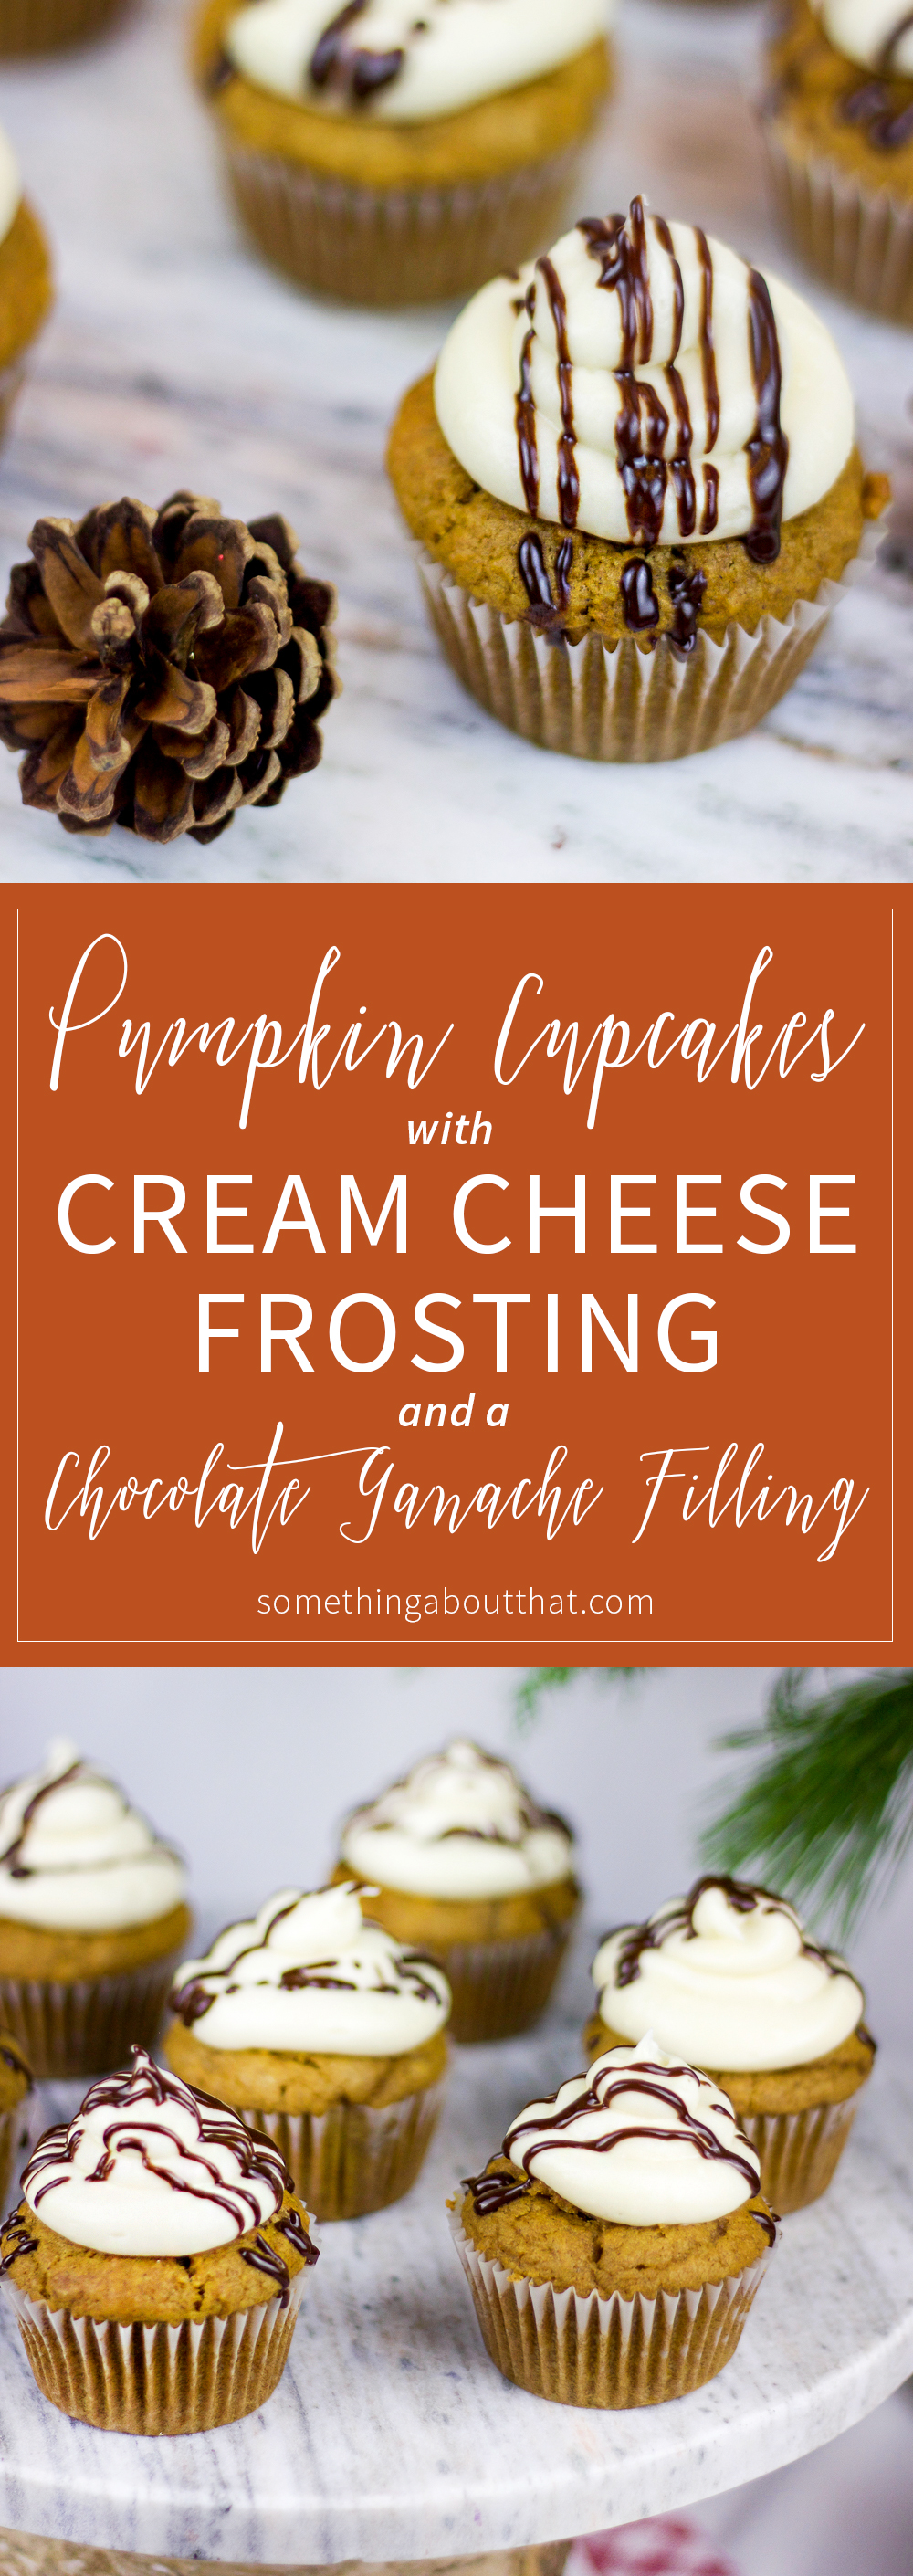 Recipe for pumpkin spice cupcakes with a chocolate ganache filling and cream cheese frosting